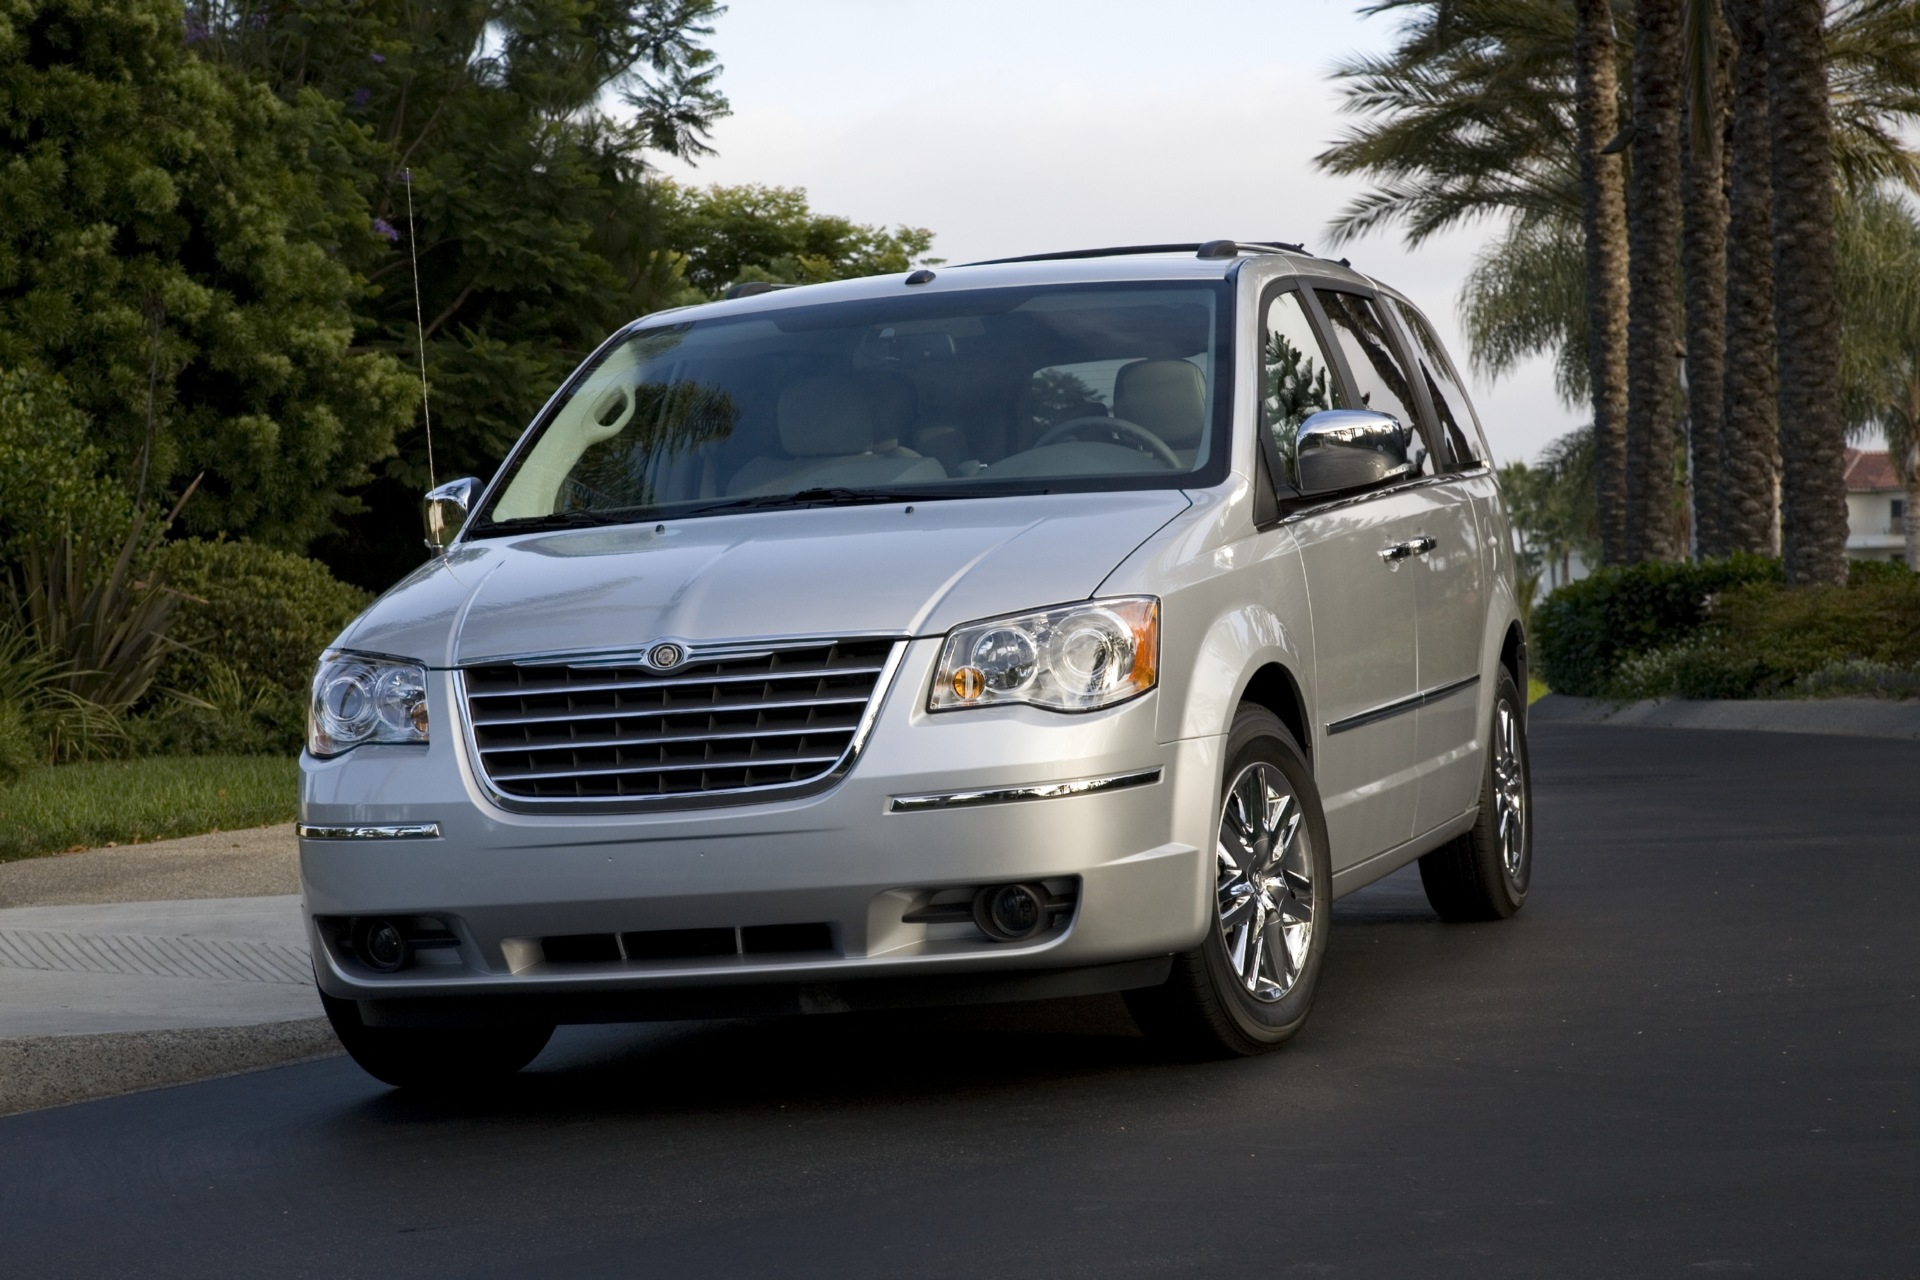 Town And Country Auto Sales >> 2008 Chrysler Town & Country - conceptcarz.com